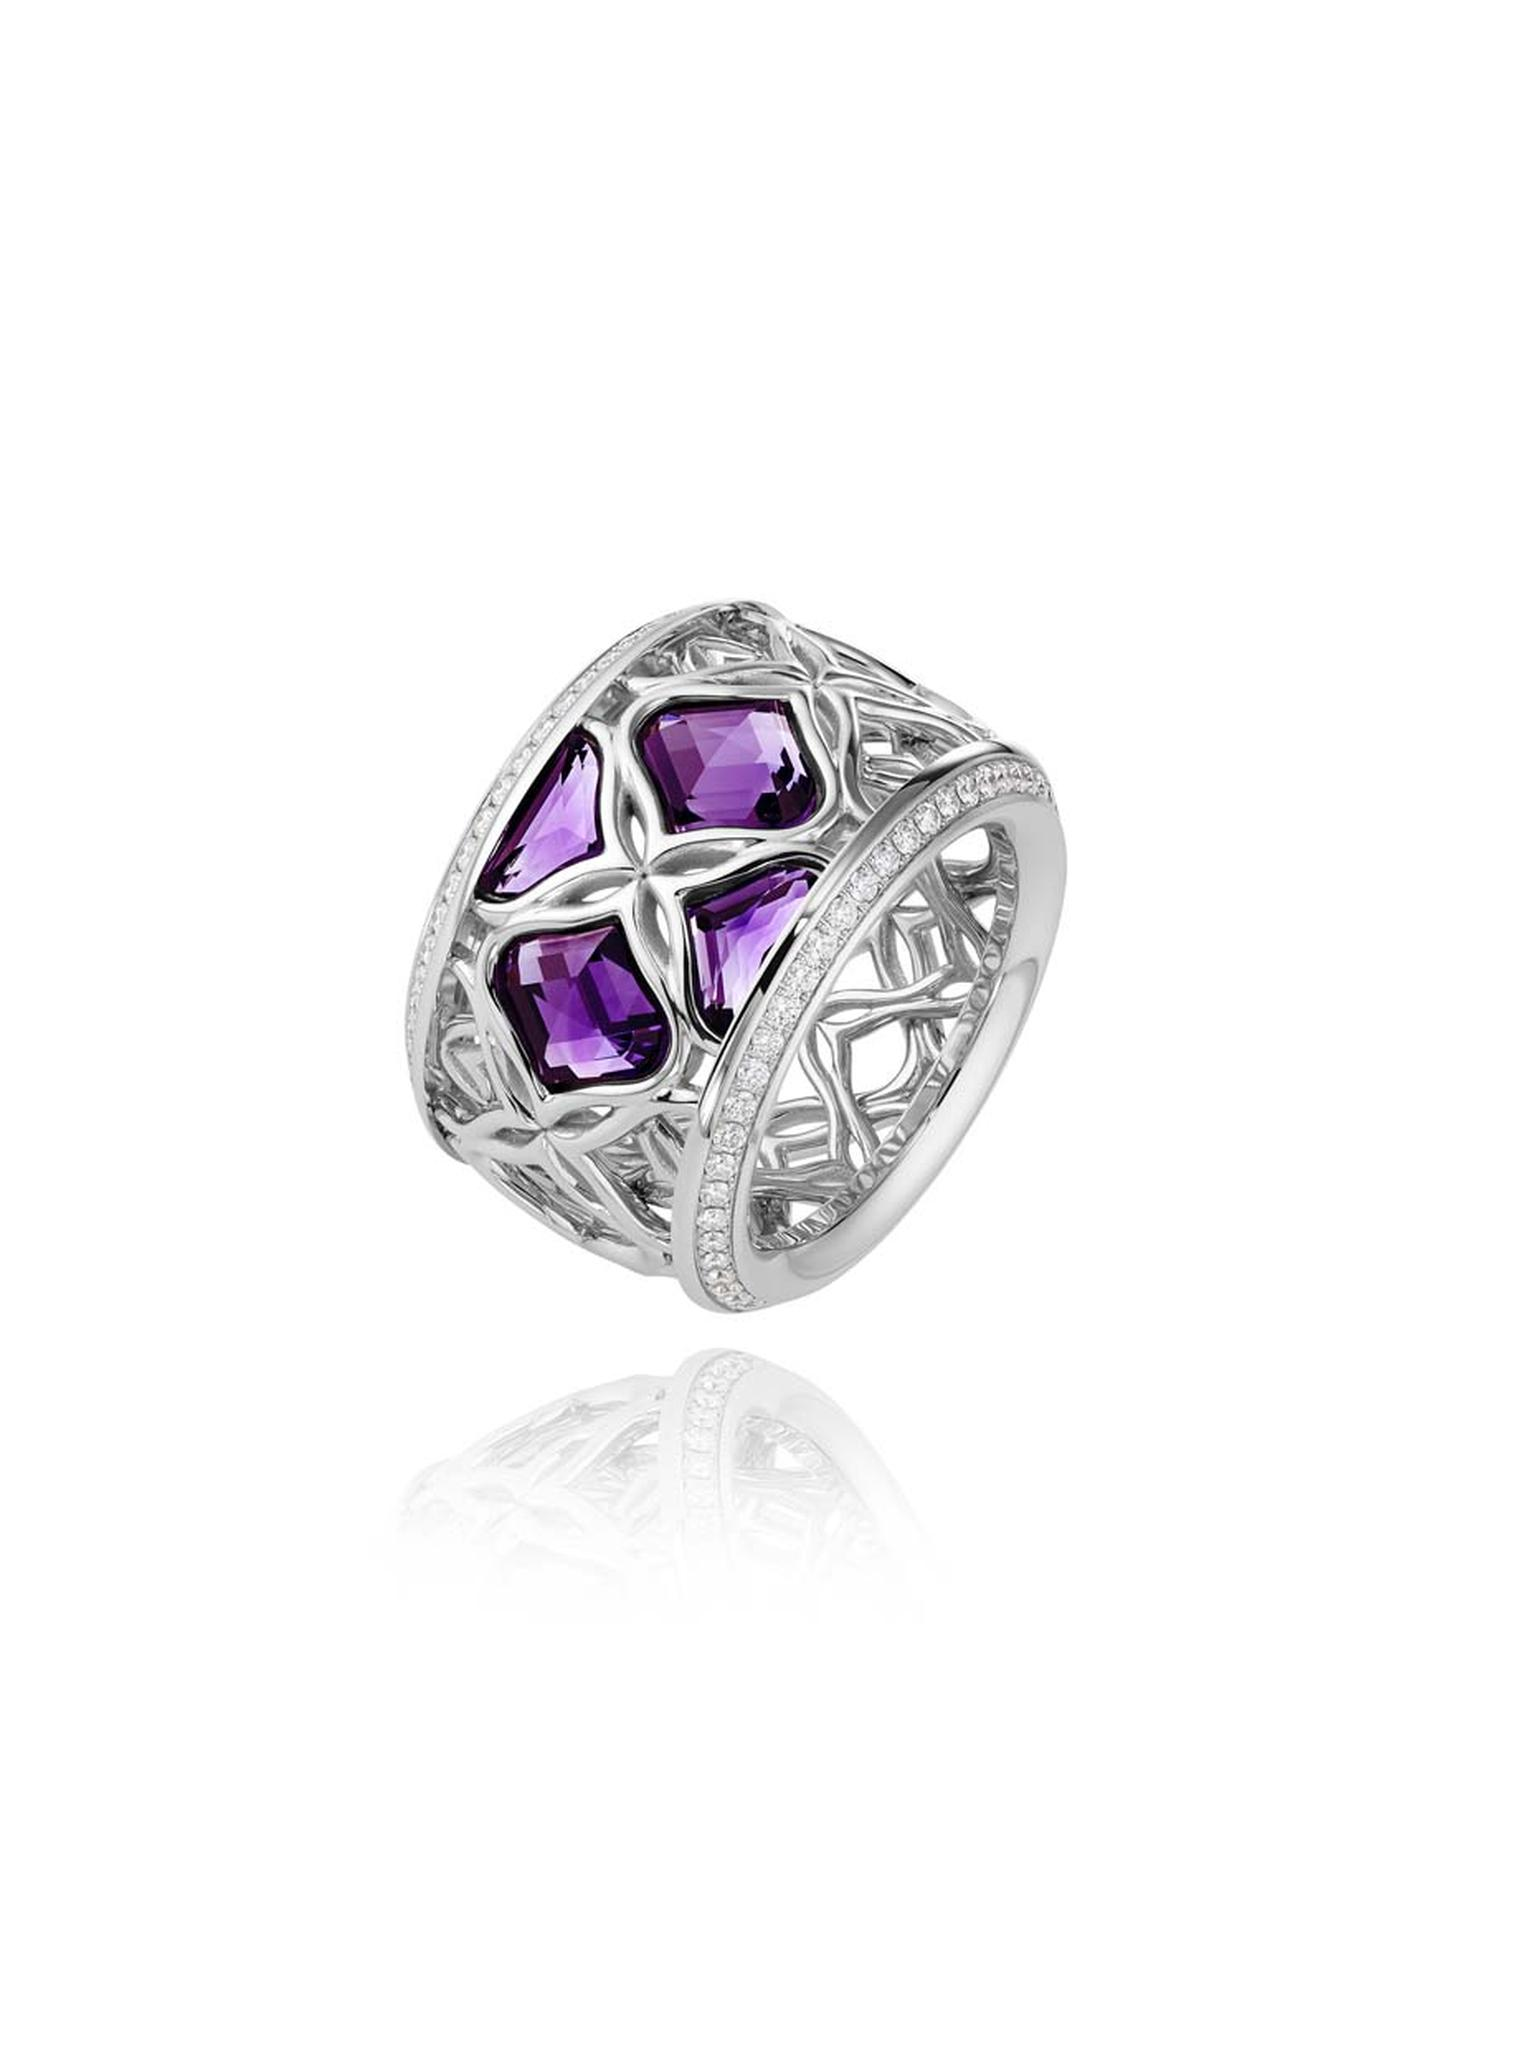 Chopard Imperiale ring featuring a facetted amethyst surrounded by arabesque motifs and diamonds.